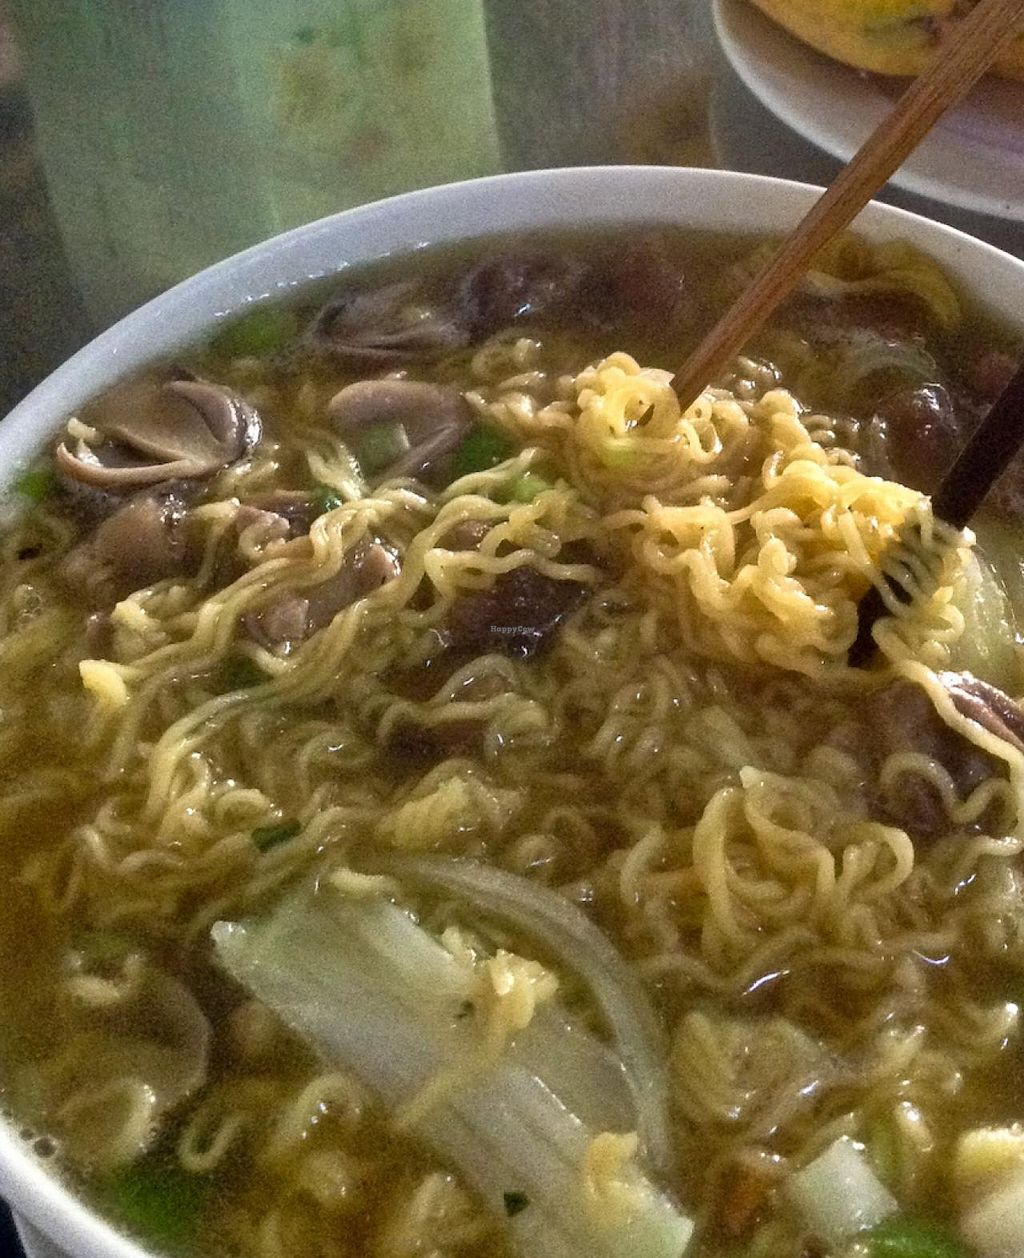 """Photo of Quan Chay Huong Sen  by <a href=""""/members/profile/Ranks42"""">Ranks42</a> <br/>Mushroom Noodle Soup <br/> February 10, 2014  - <a href='/contact/abuse/image/45137/64155'>Report</a>"""